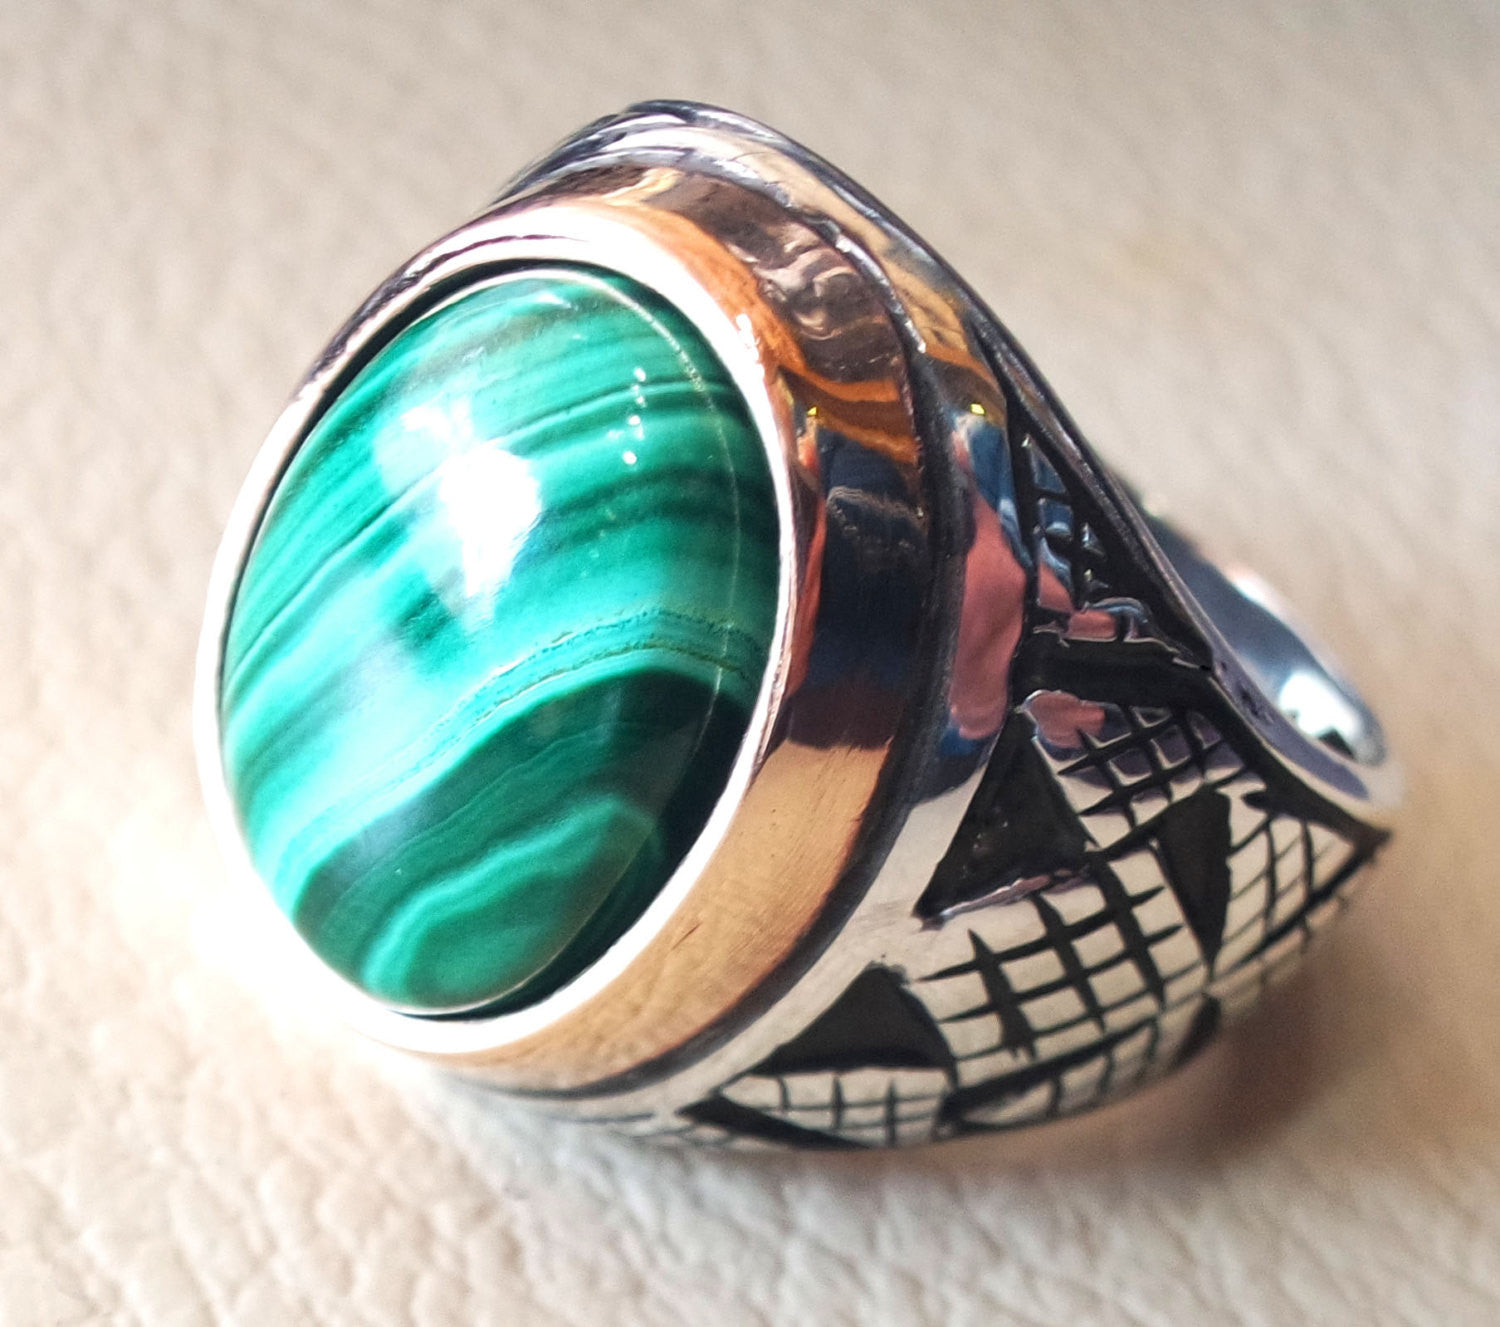 malachite natural green stone sterling silver 925 man ring jewelry bronze frame eastern turkish arabic style oval semi precious cabochon